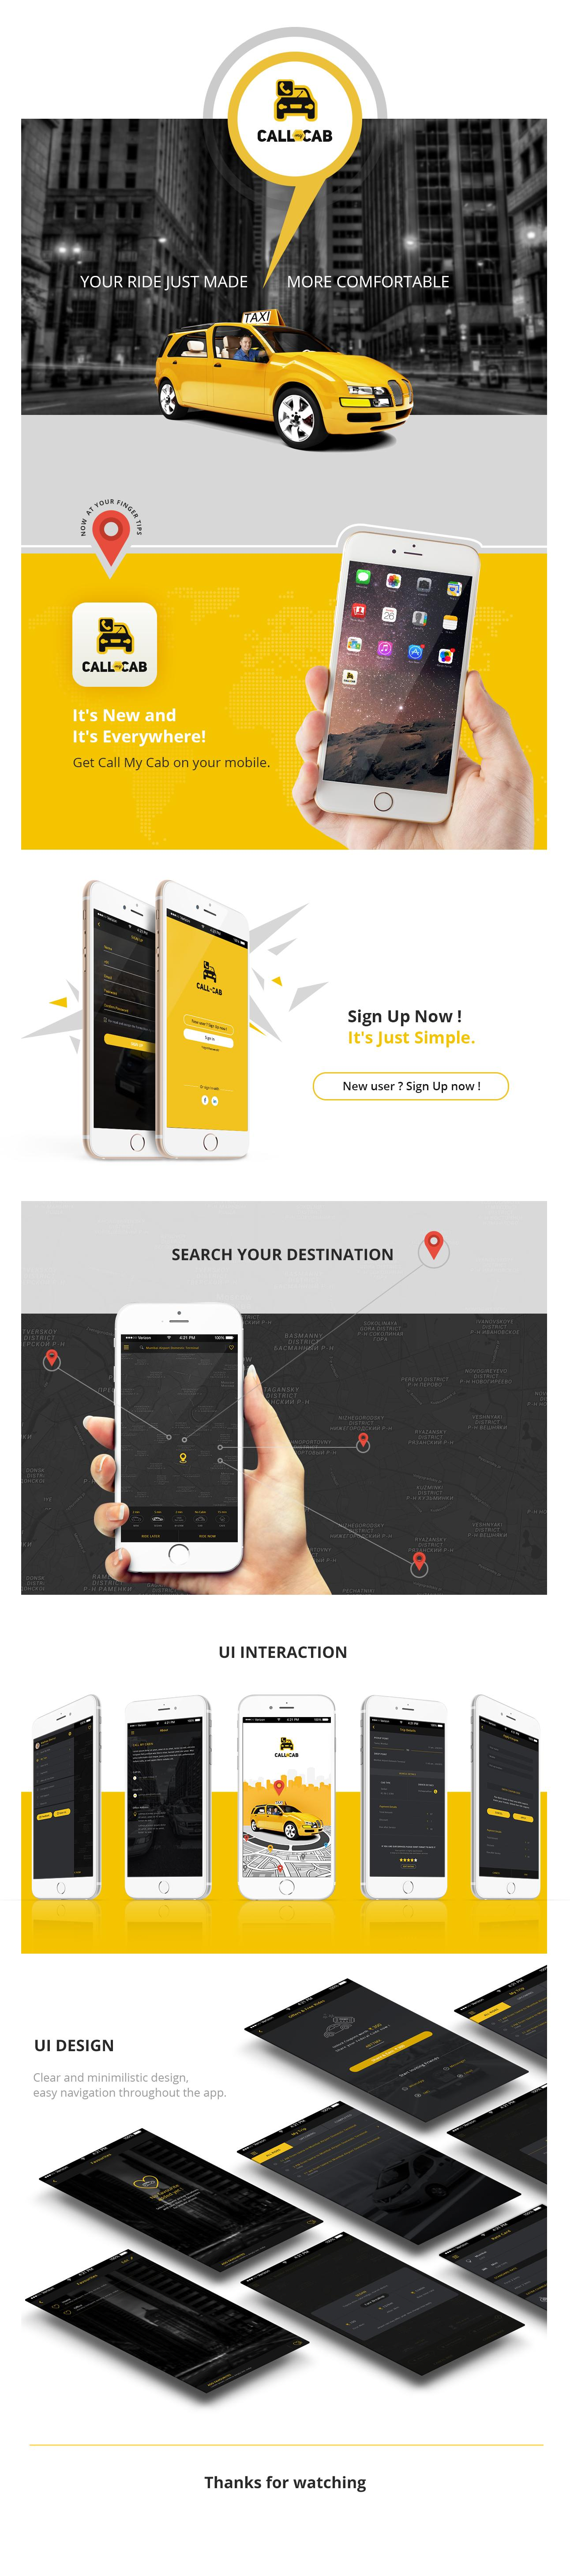 Online Taxi Booking App -Call My Cab Mobile App